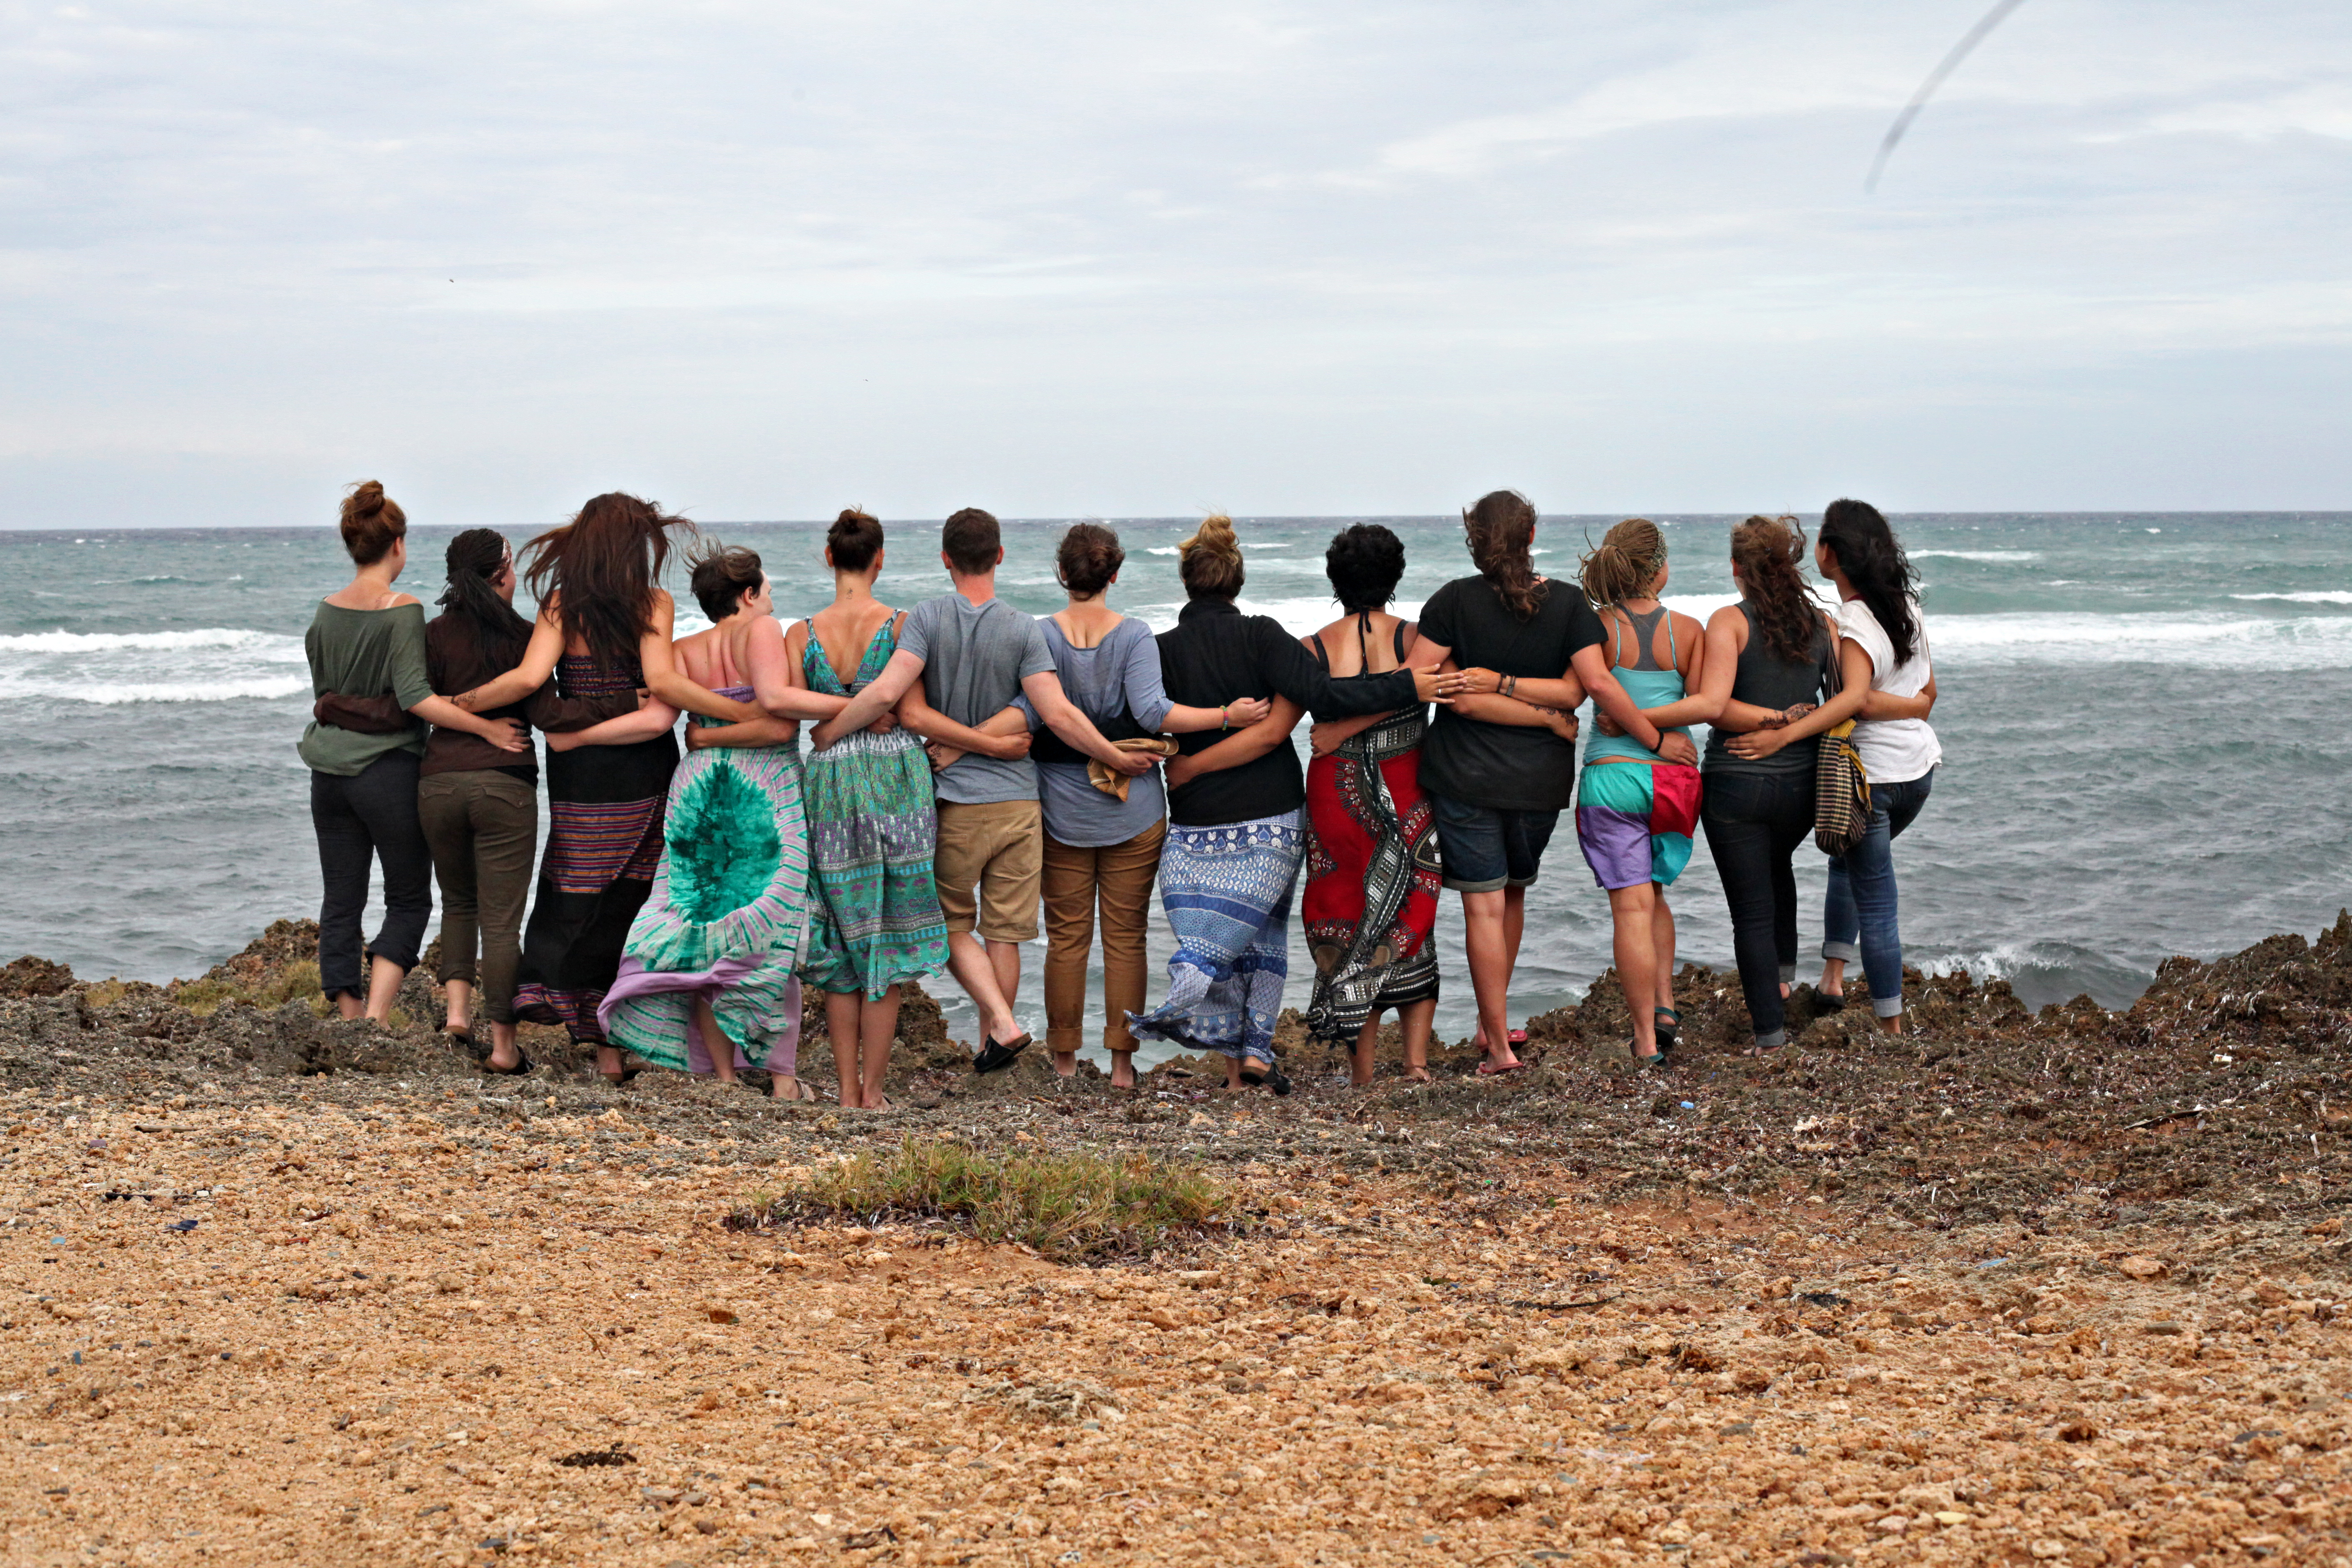 Group at the Edge of the Beach